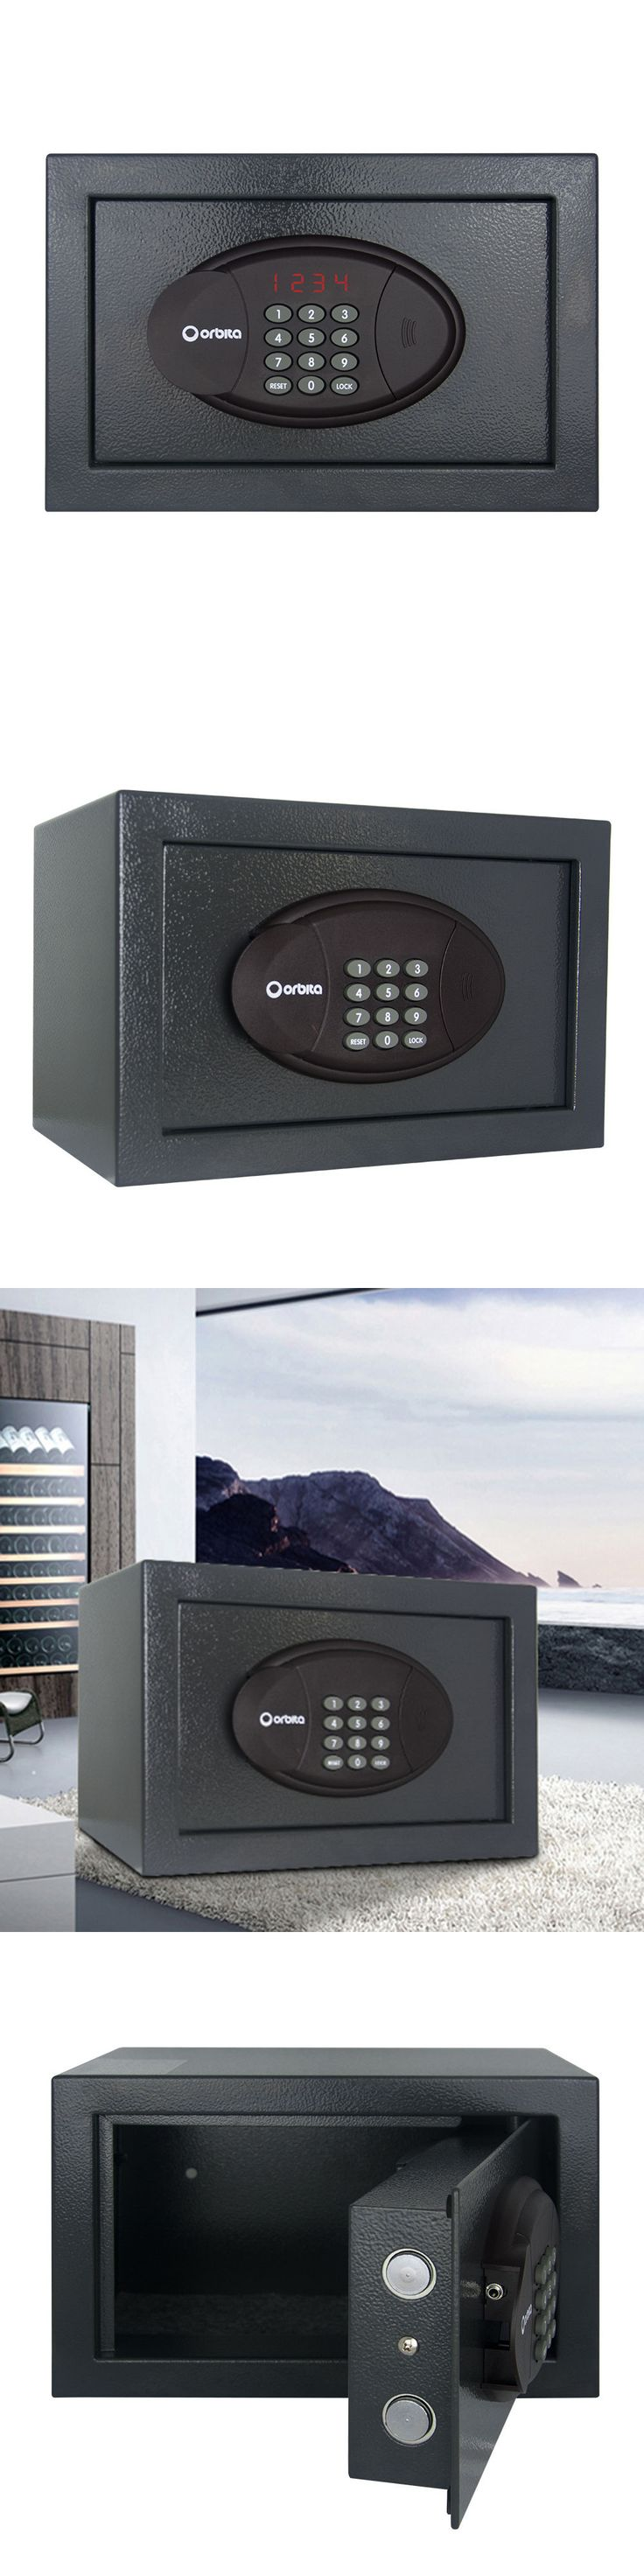 Safes 121836: Digital Electronic Safe Box Keypad Lock Box Large Security Home Office Hotel Gun -> BUY IT NOW ONLY: $45.69 on eBay!